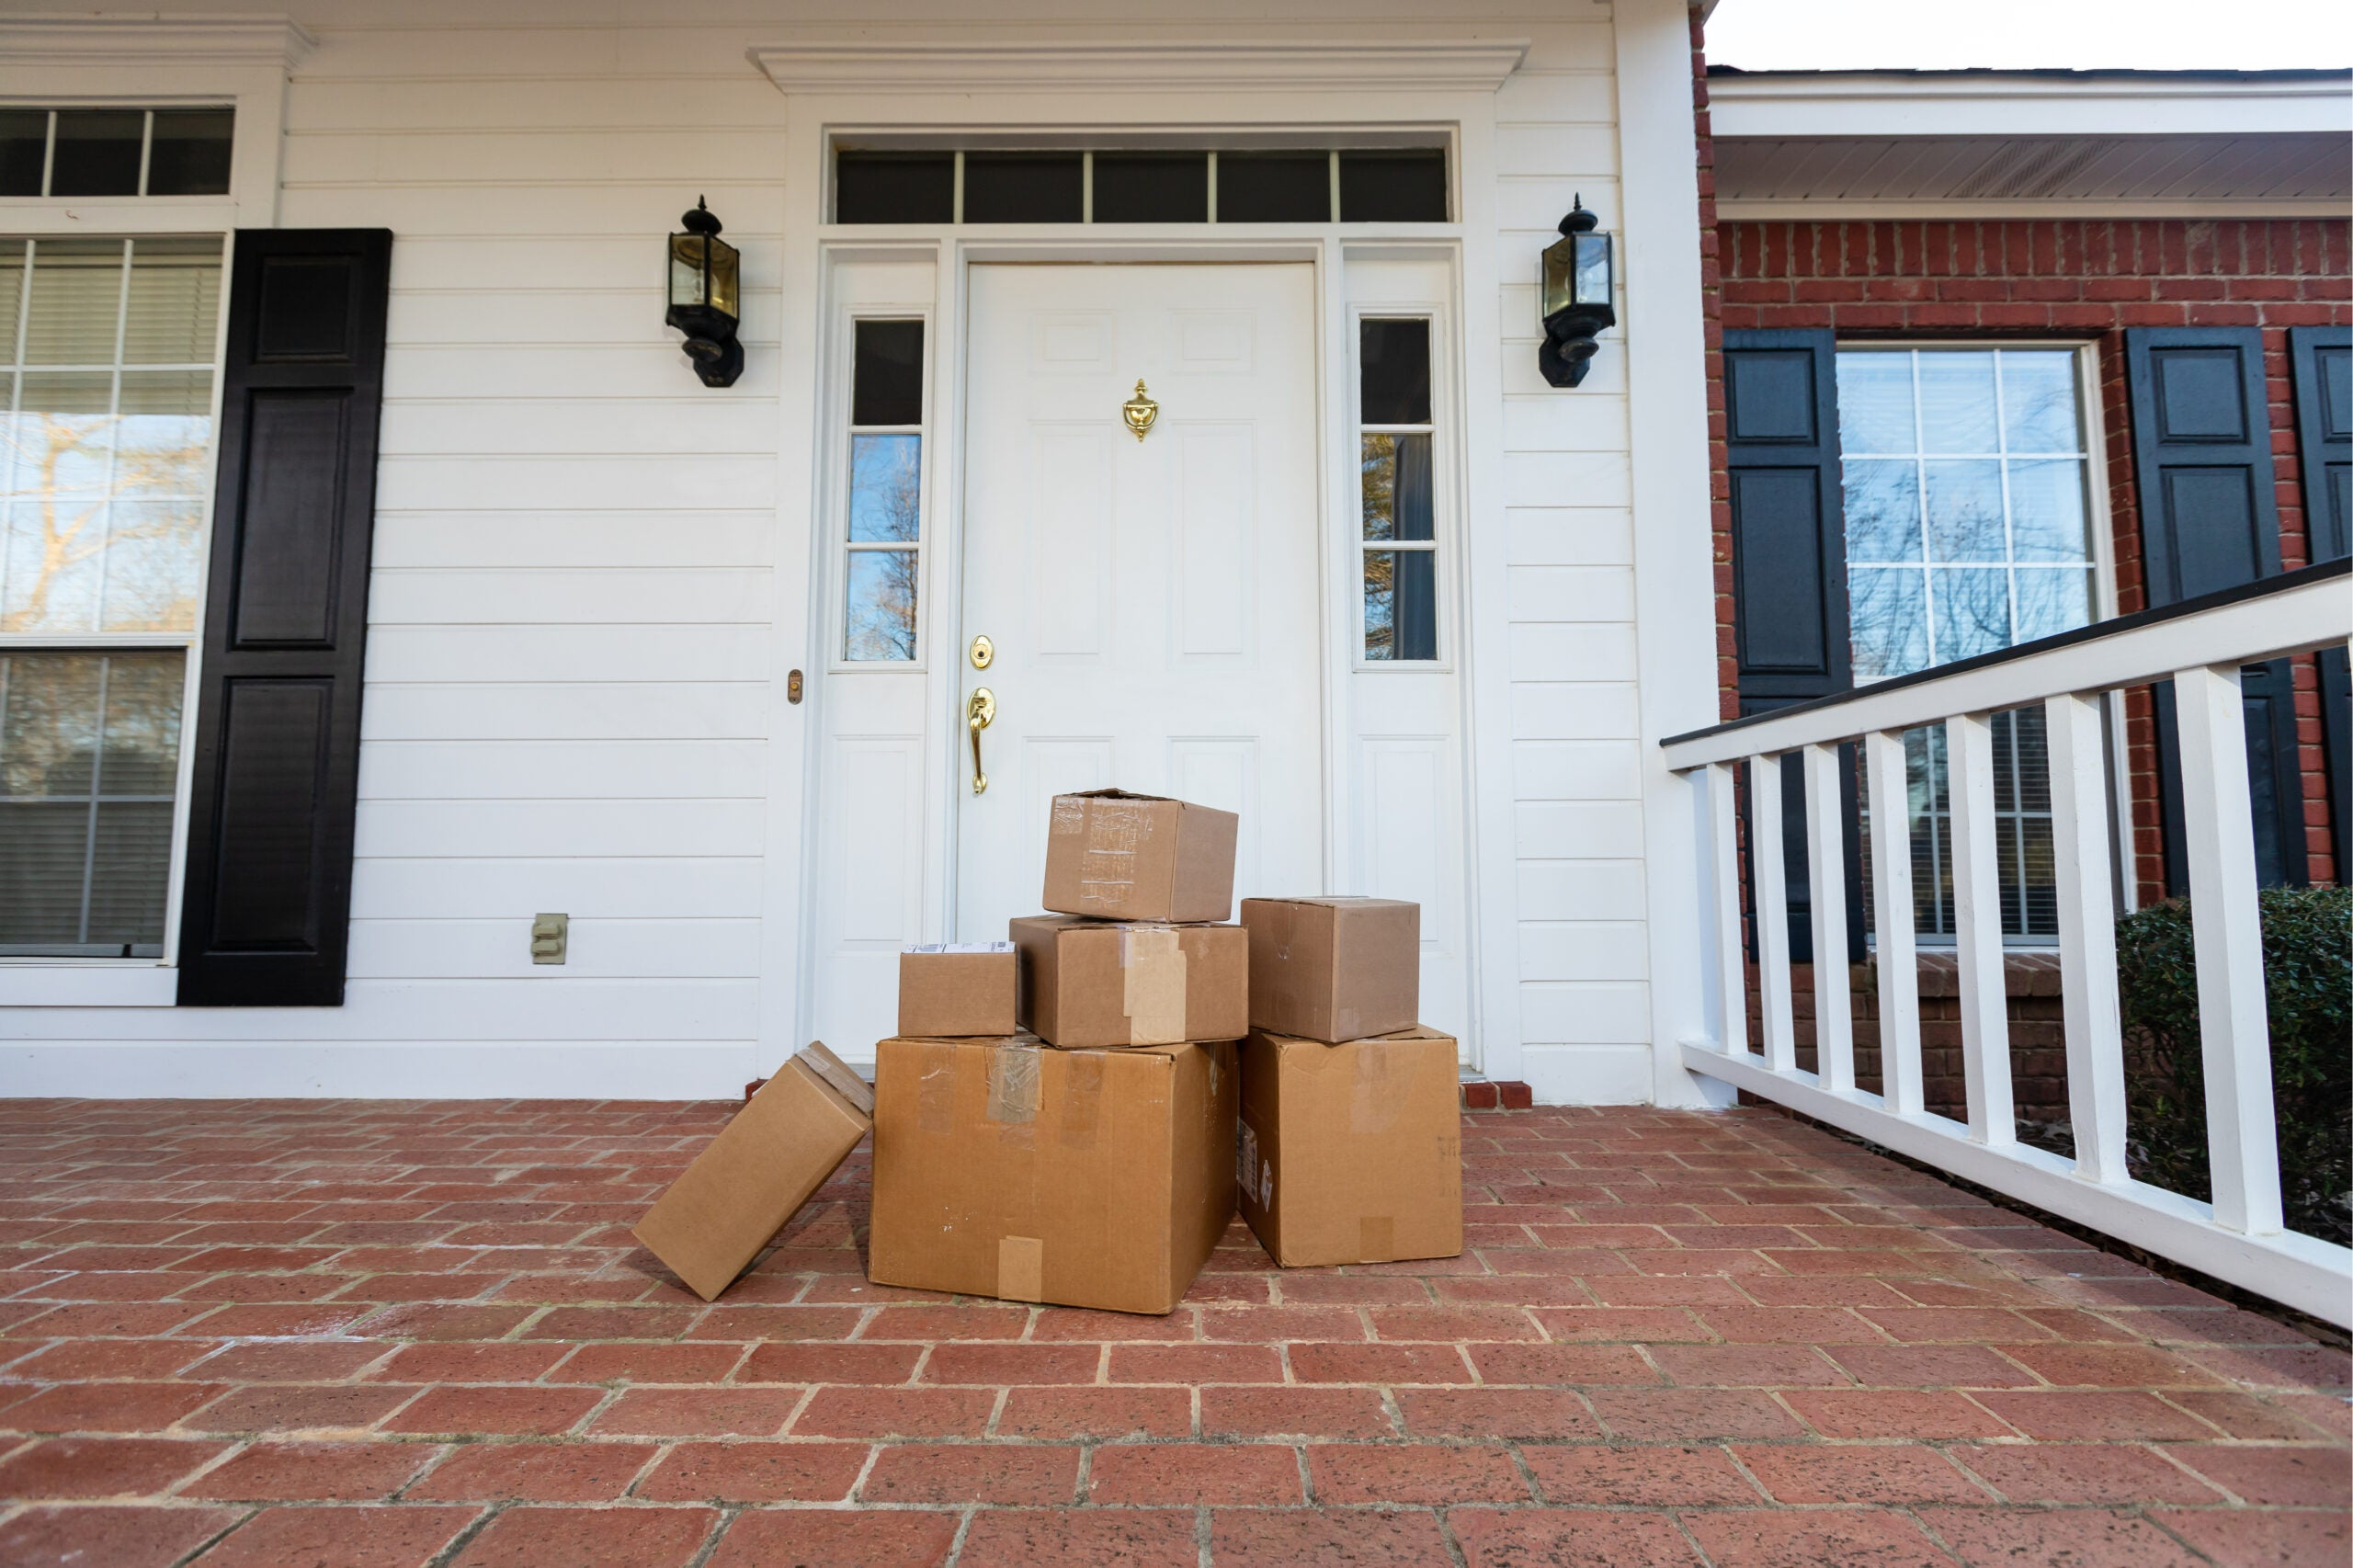 Half of US Consumers Won't Bother Reporting Package Theft to Police